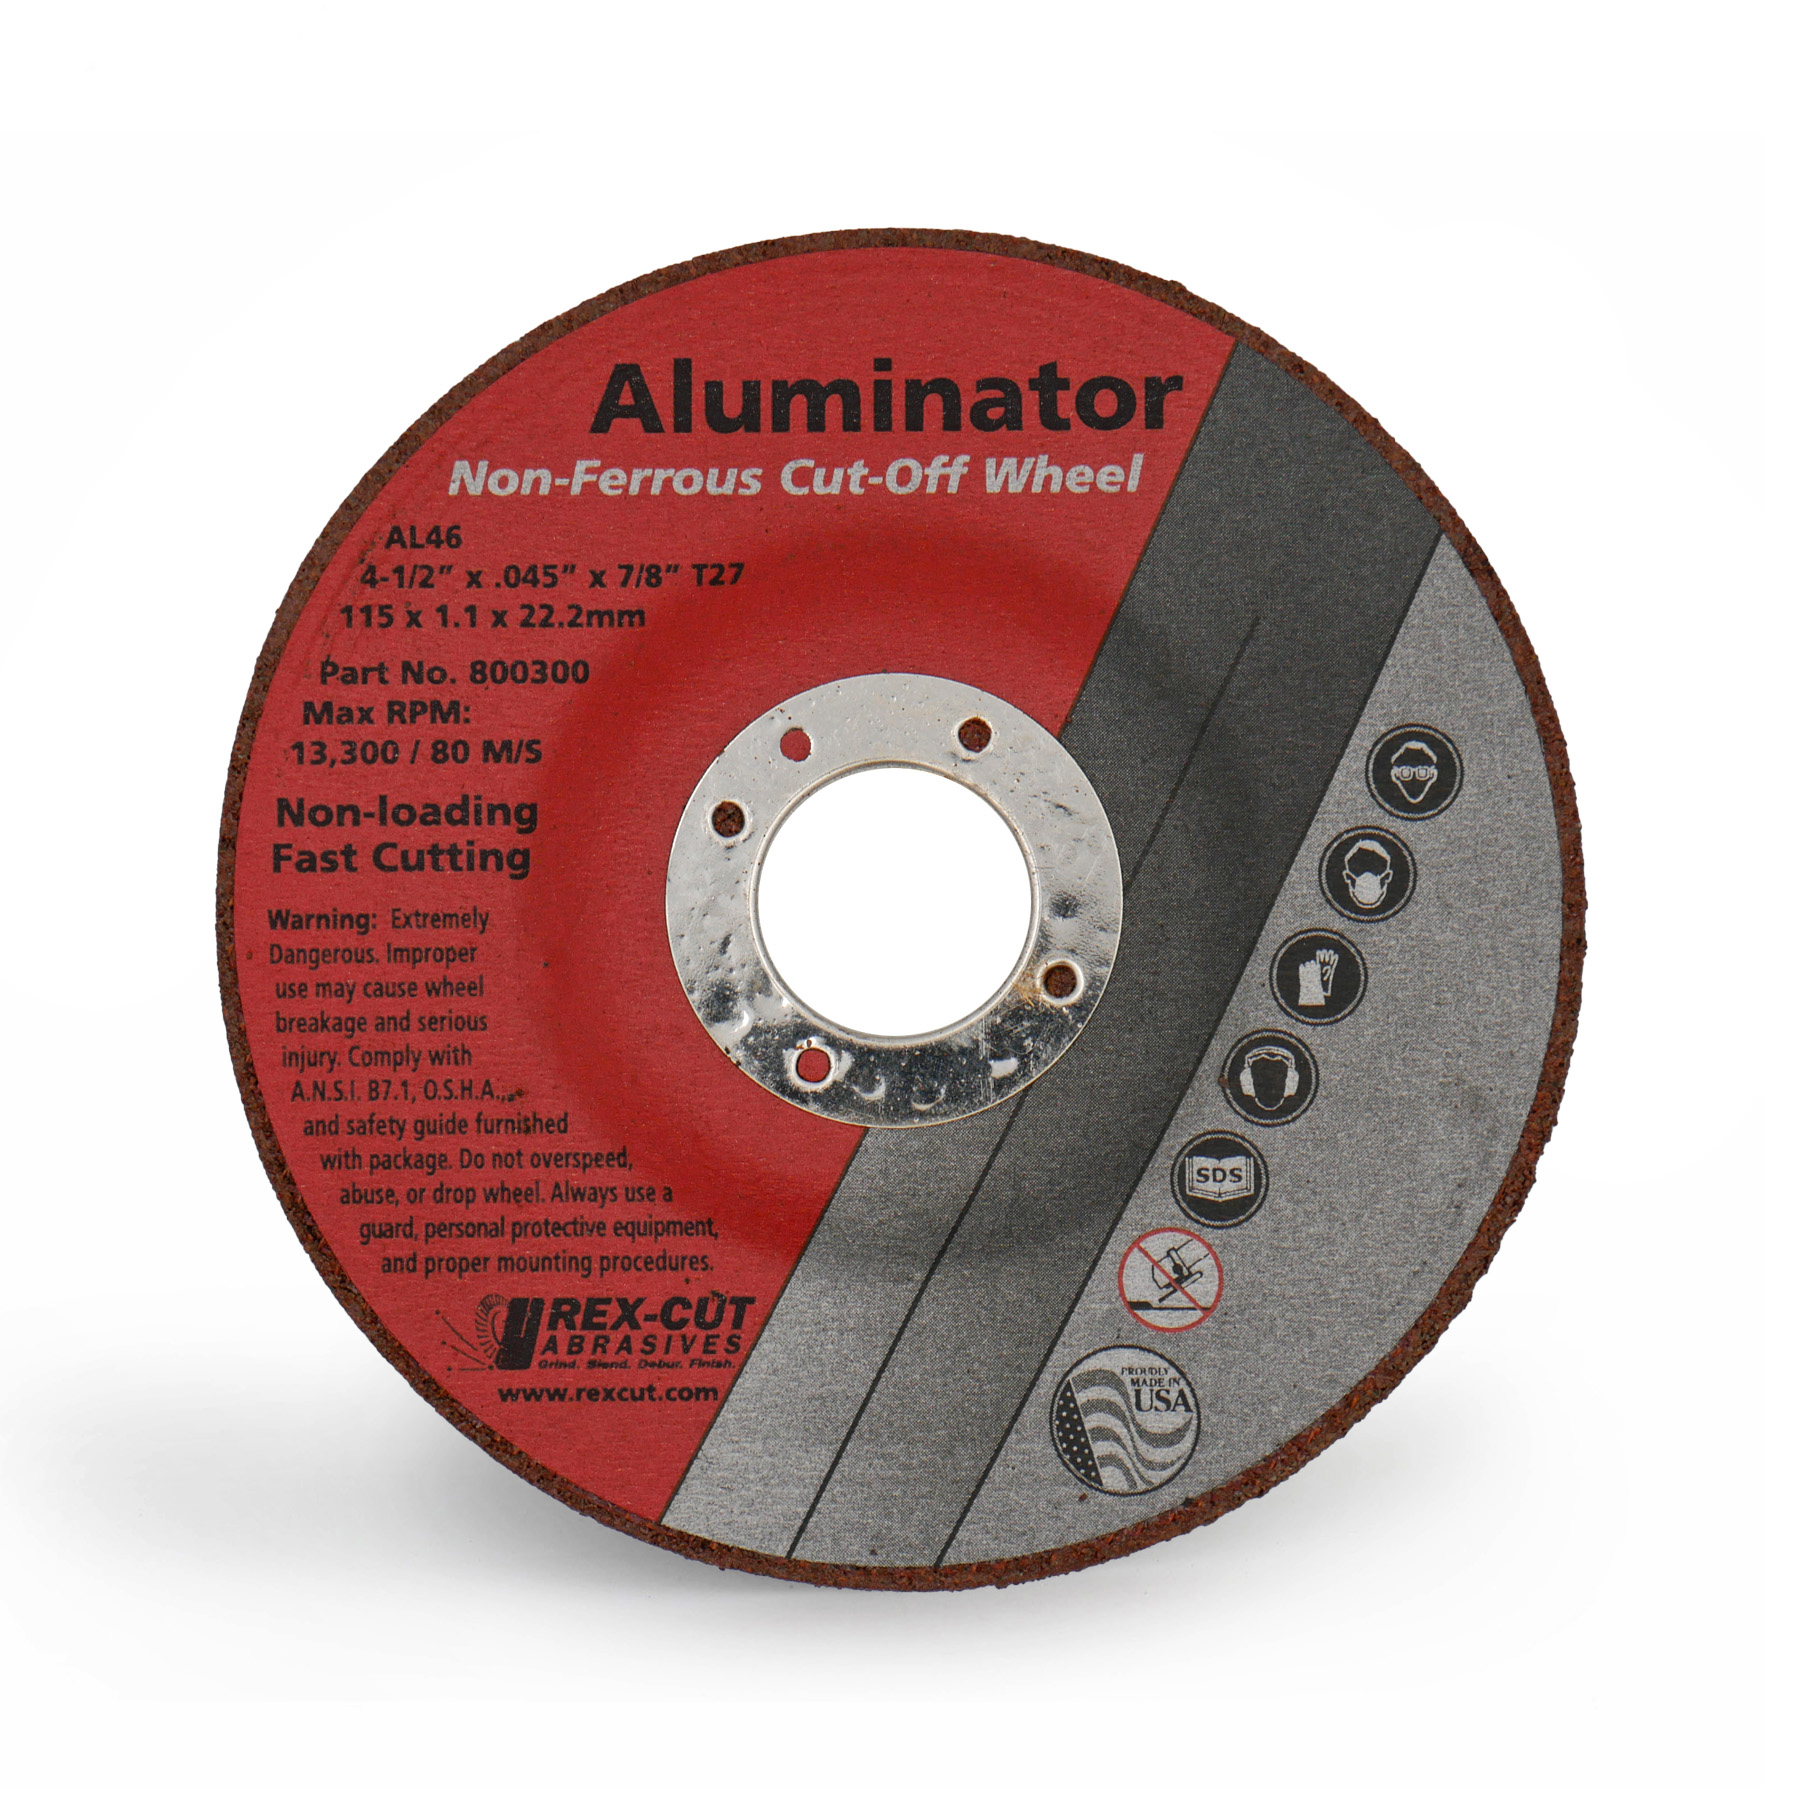 Aluminator Cut-Off Wheel